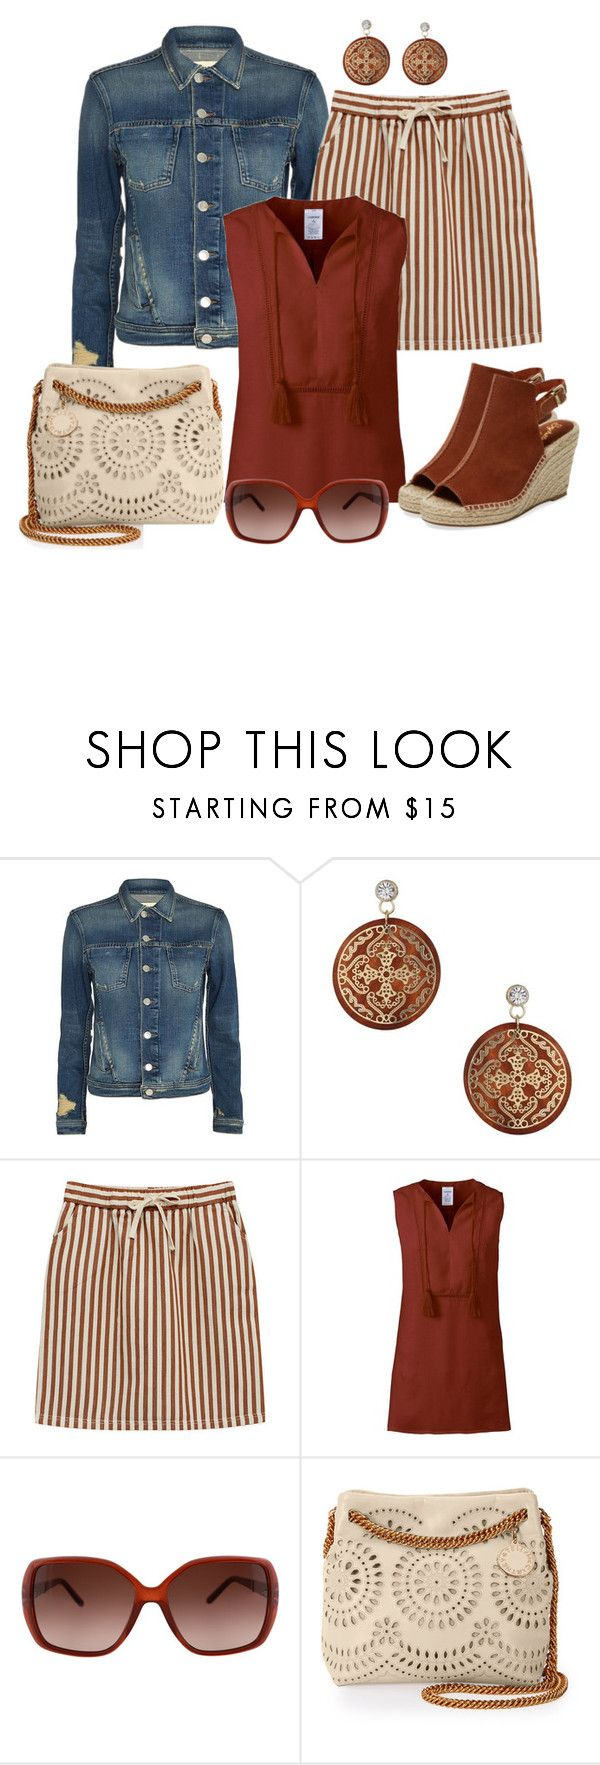 """""""Untitled #1382"""" by gallant81 ❤ liked on Polyvore featuring L'Agence, Miss Selfridge, Lands' End, Chloé, STELLA McCARTNEY and Seychelles"""